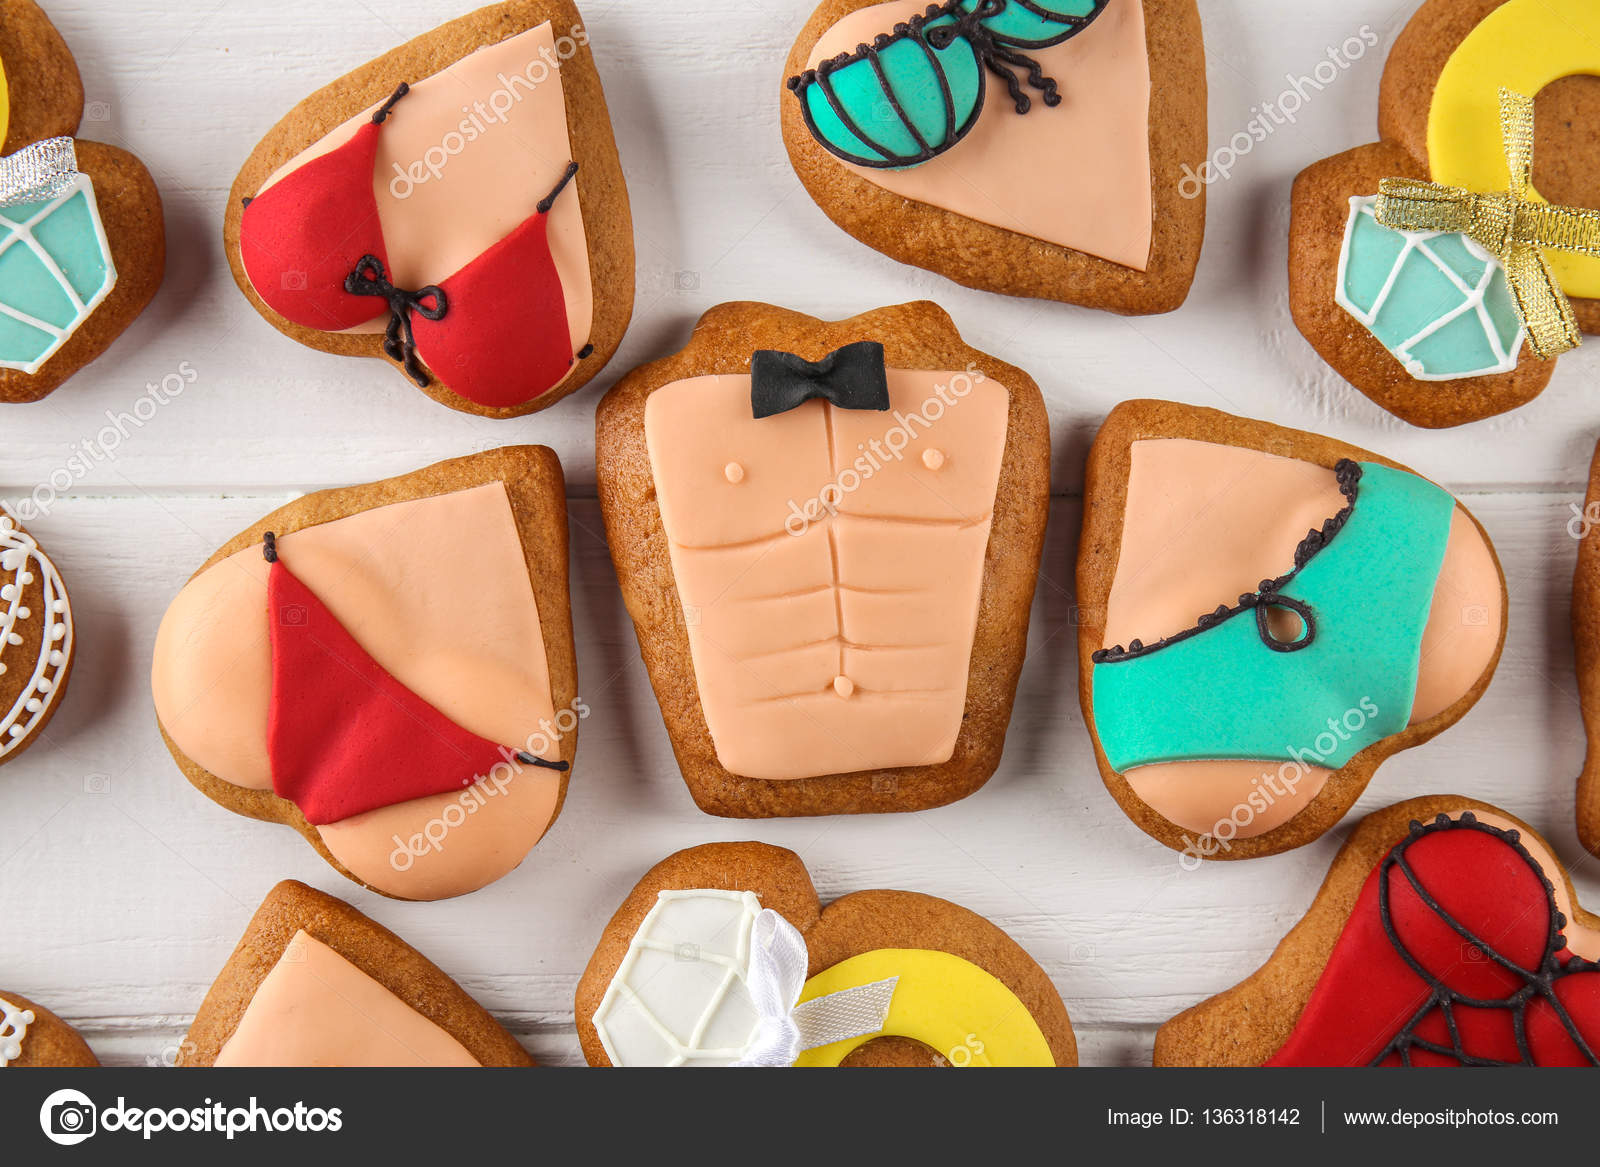 Bachelorette Party Cookies — Stock Photo © Belchonock  136318142